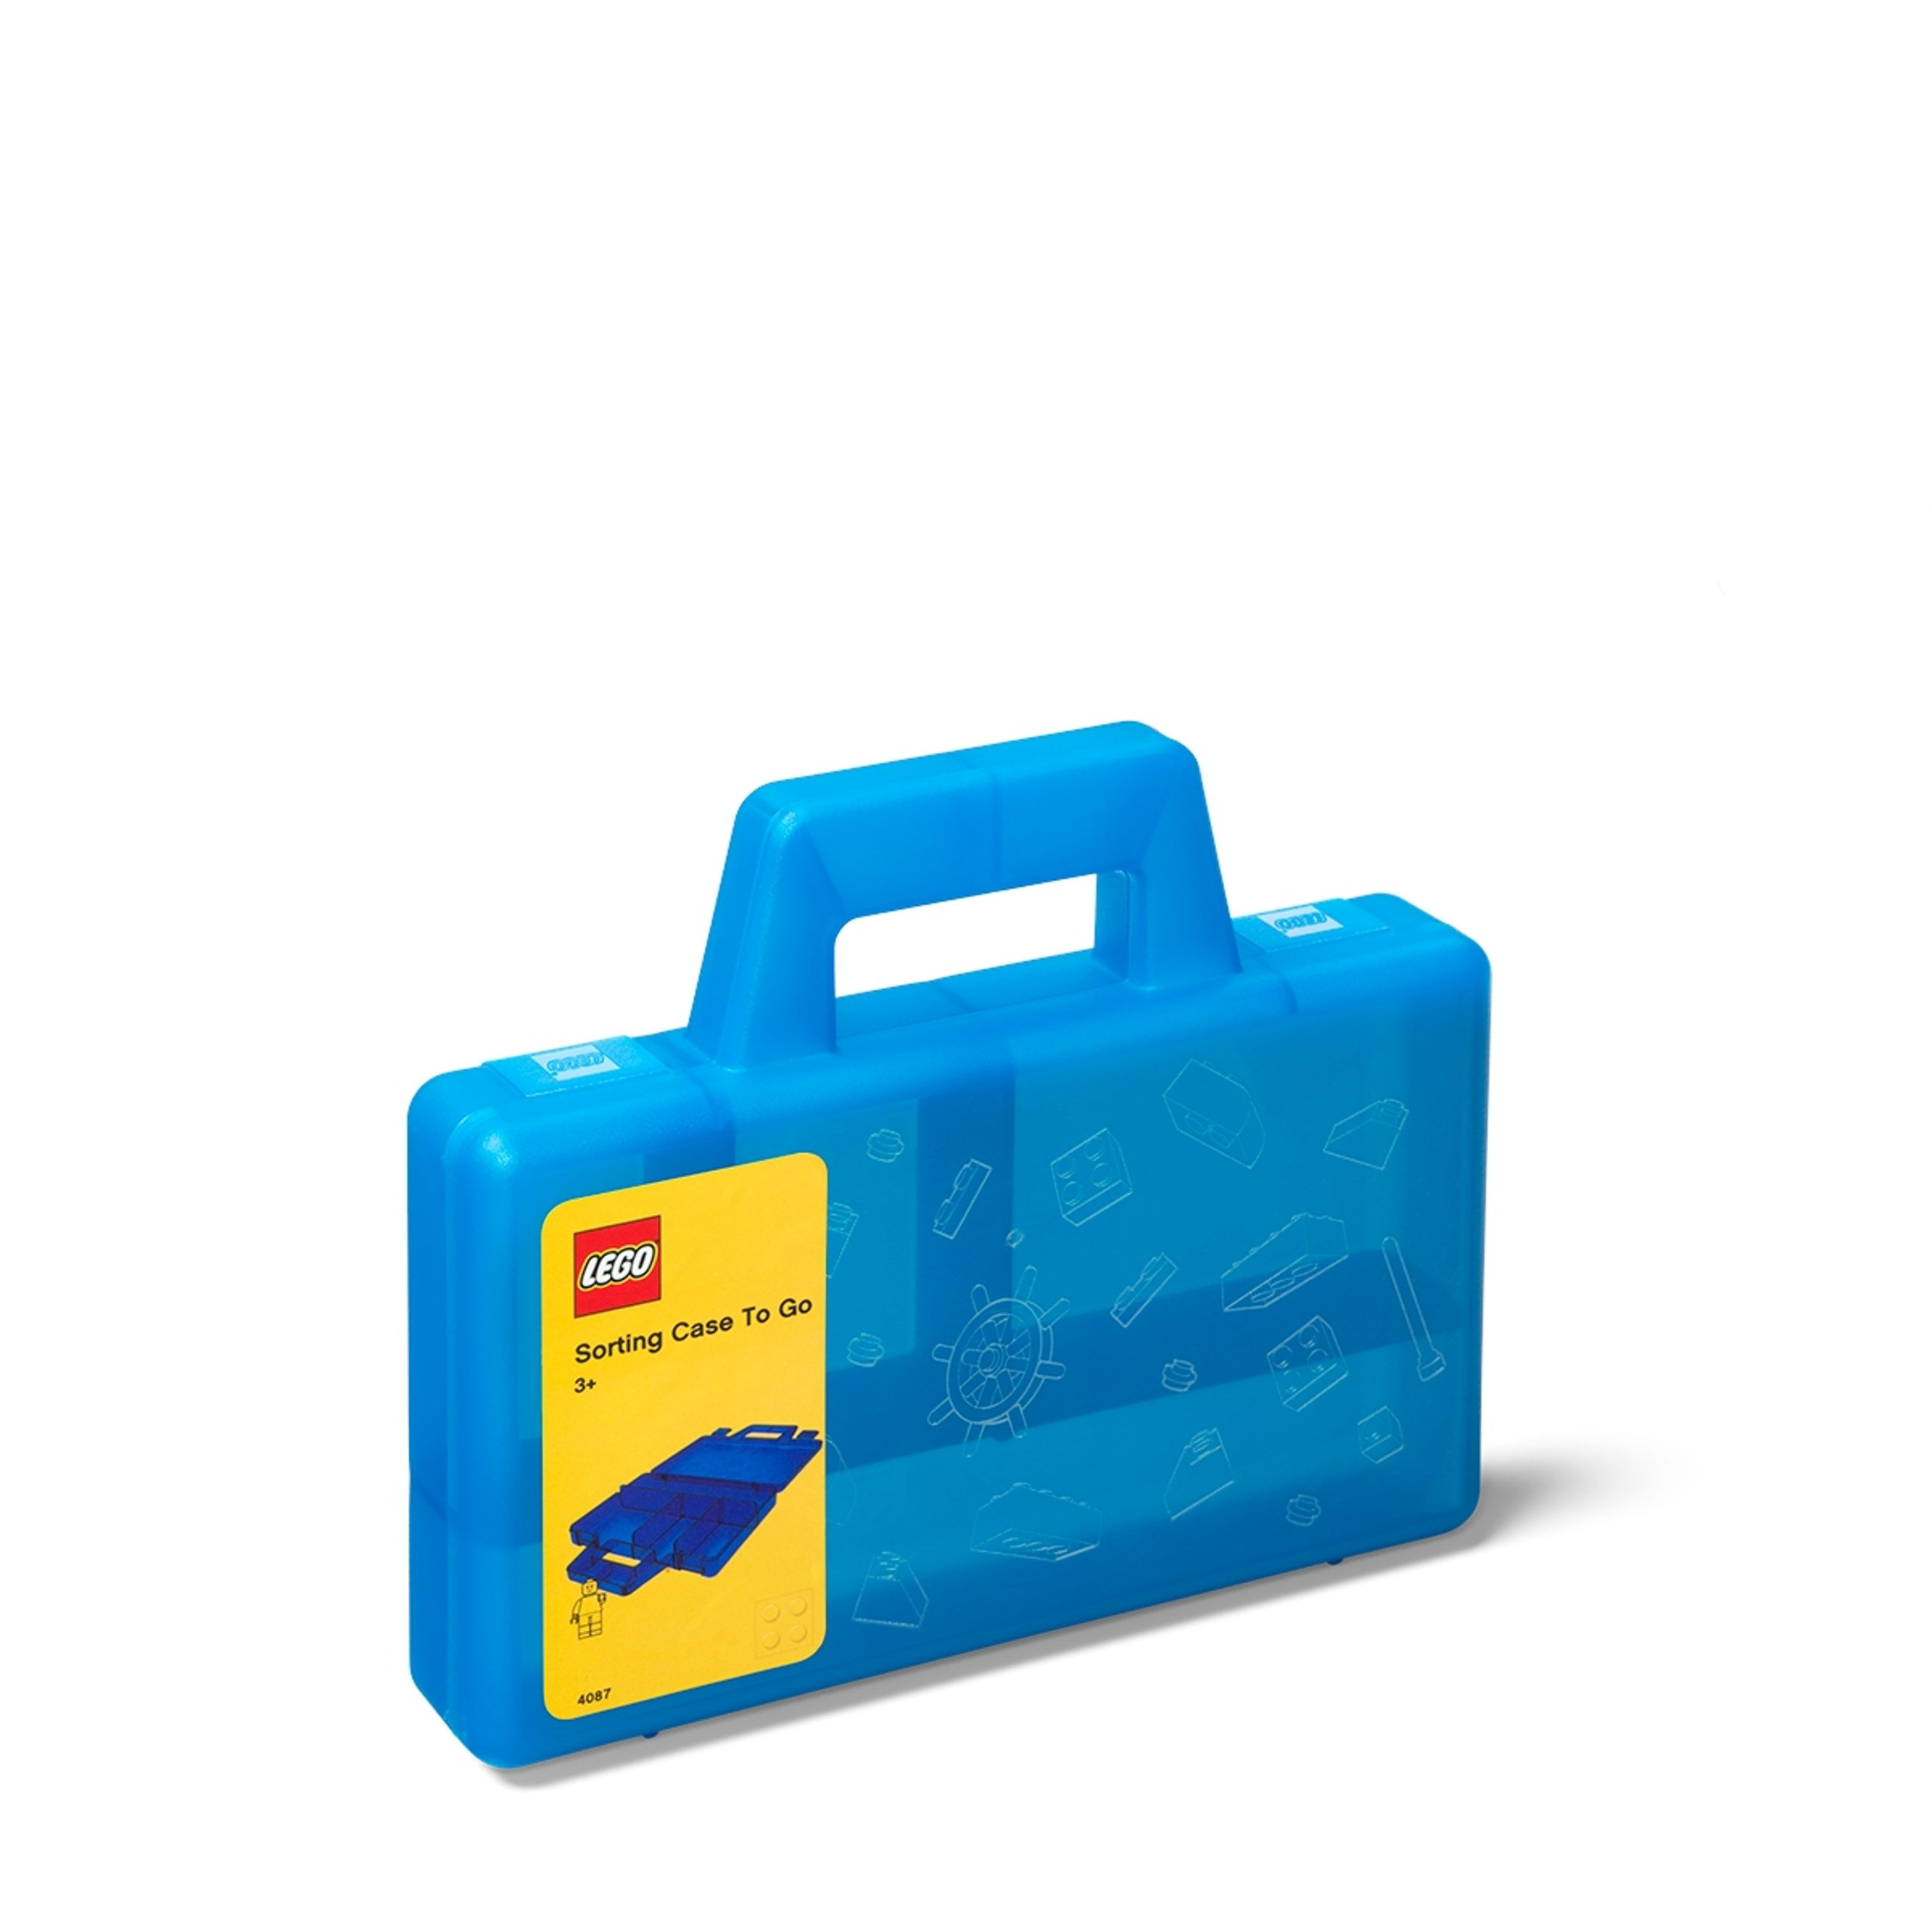 lego 5005890 transparent blue sorting case to go scaled